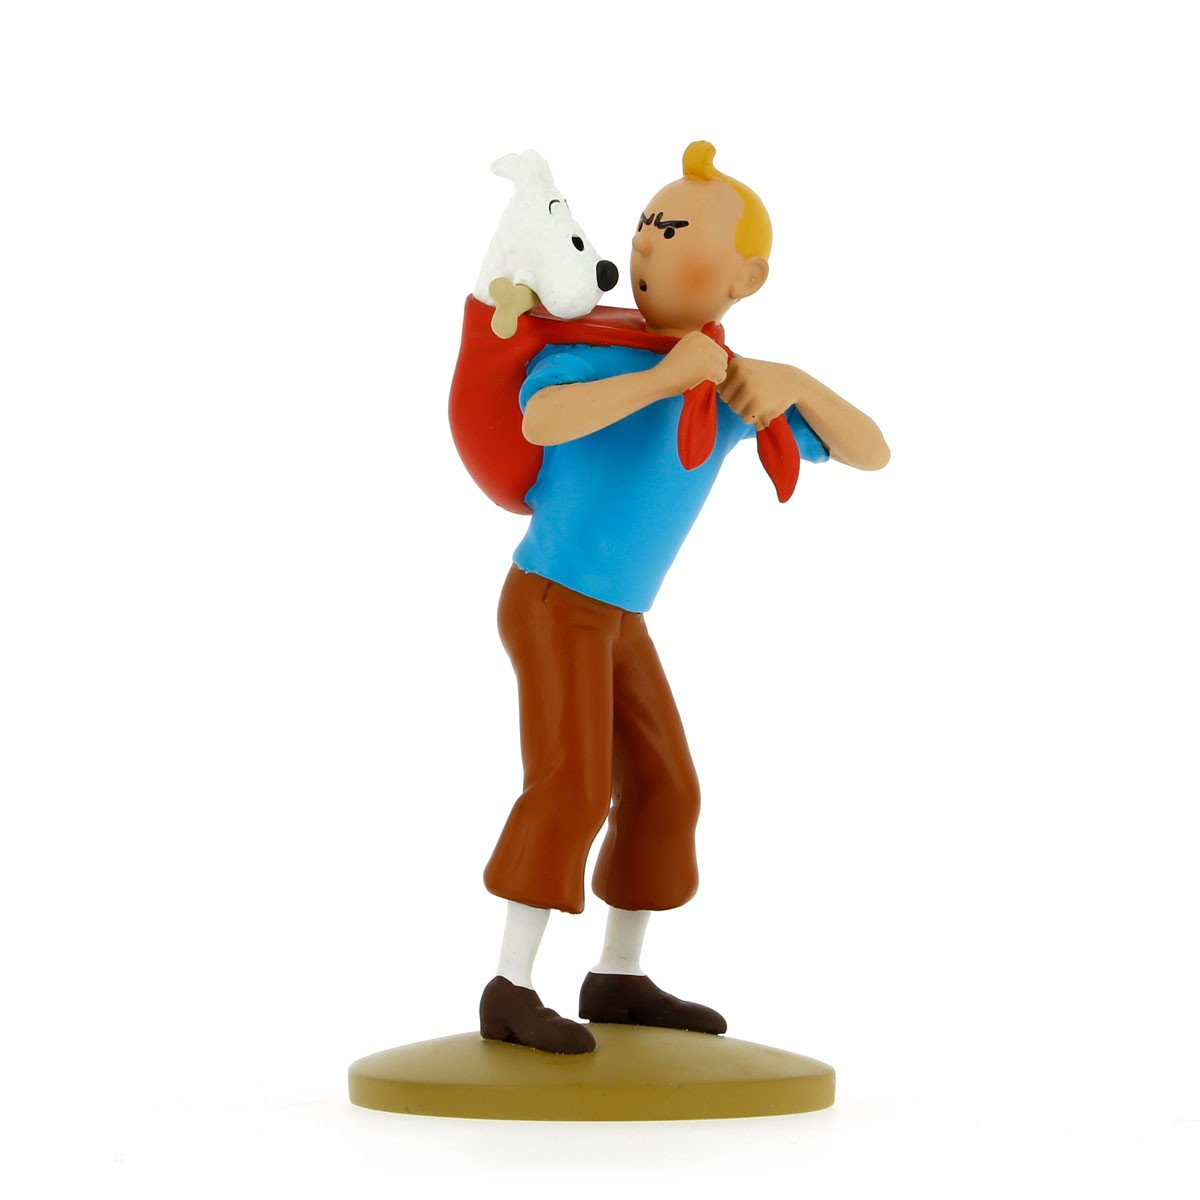 RESIN FIGURINE - TINTIN CARRIES SNOWY